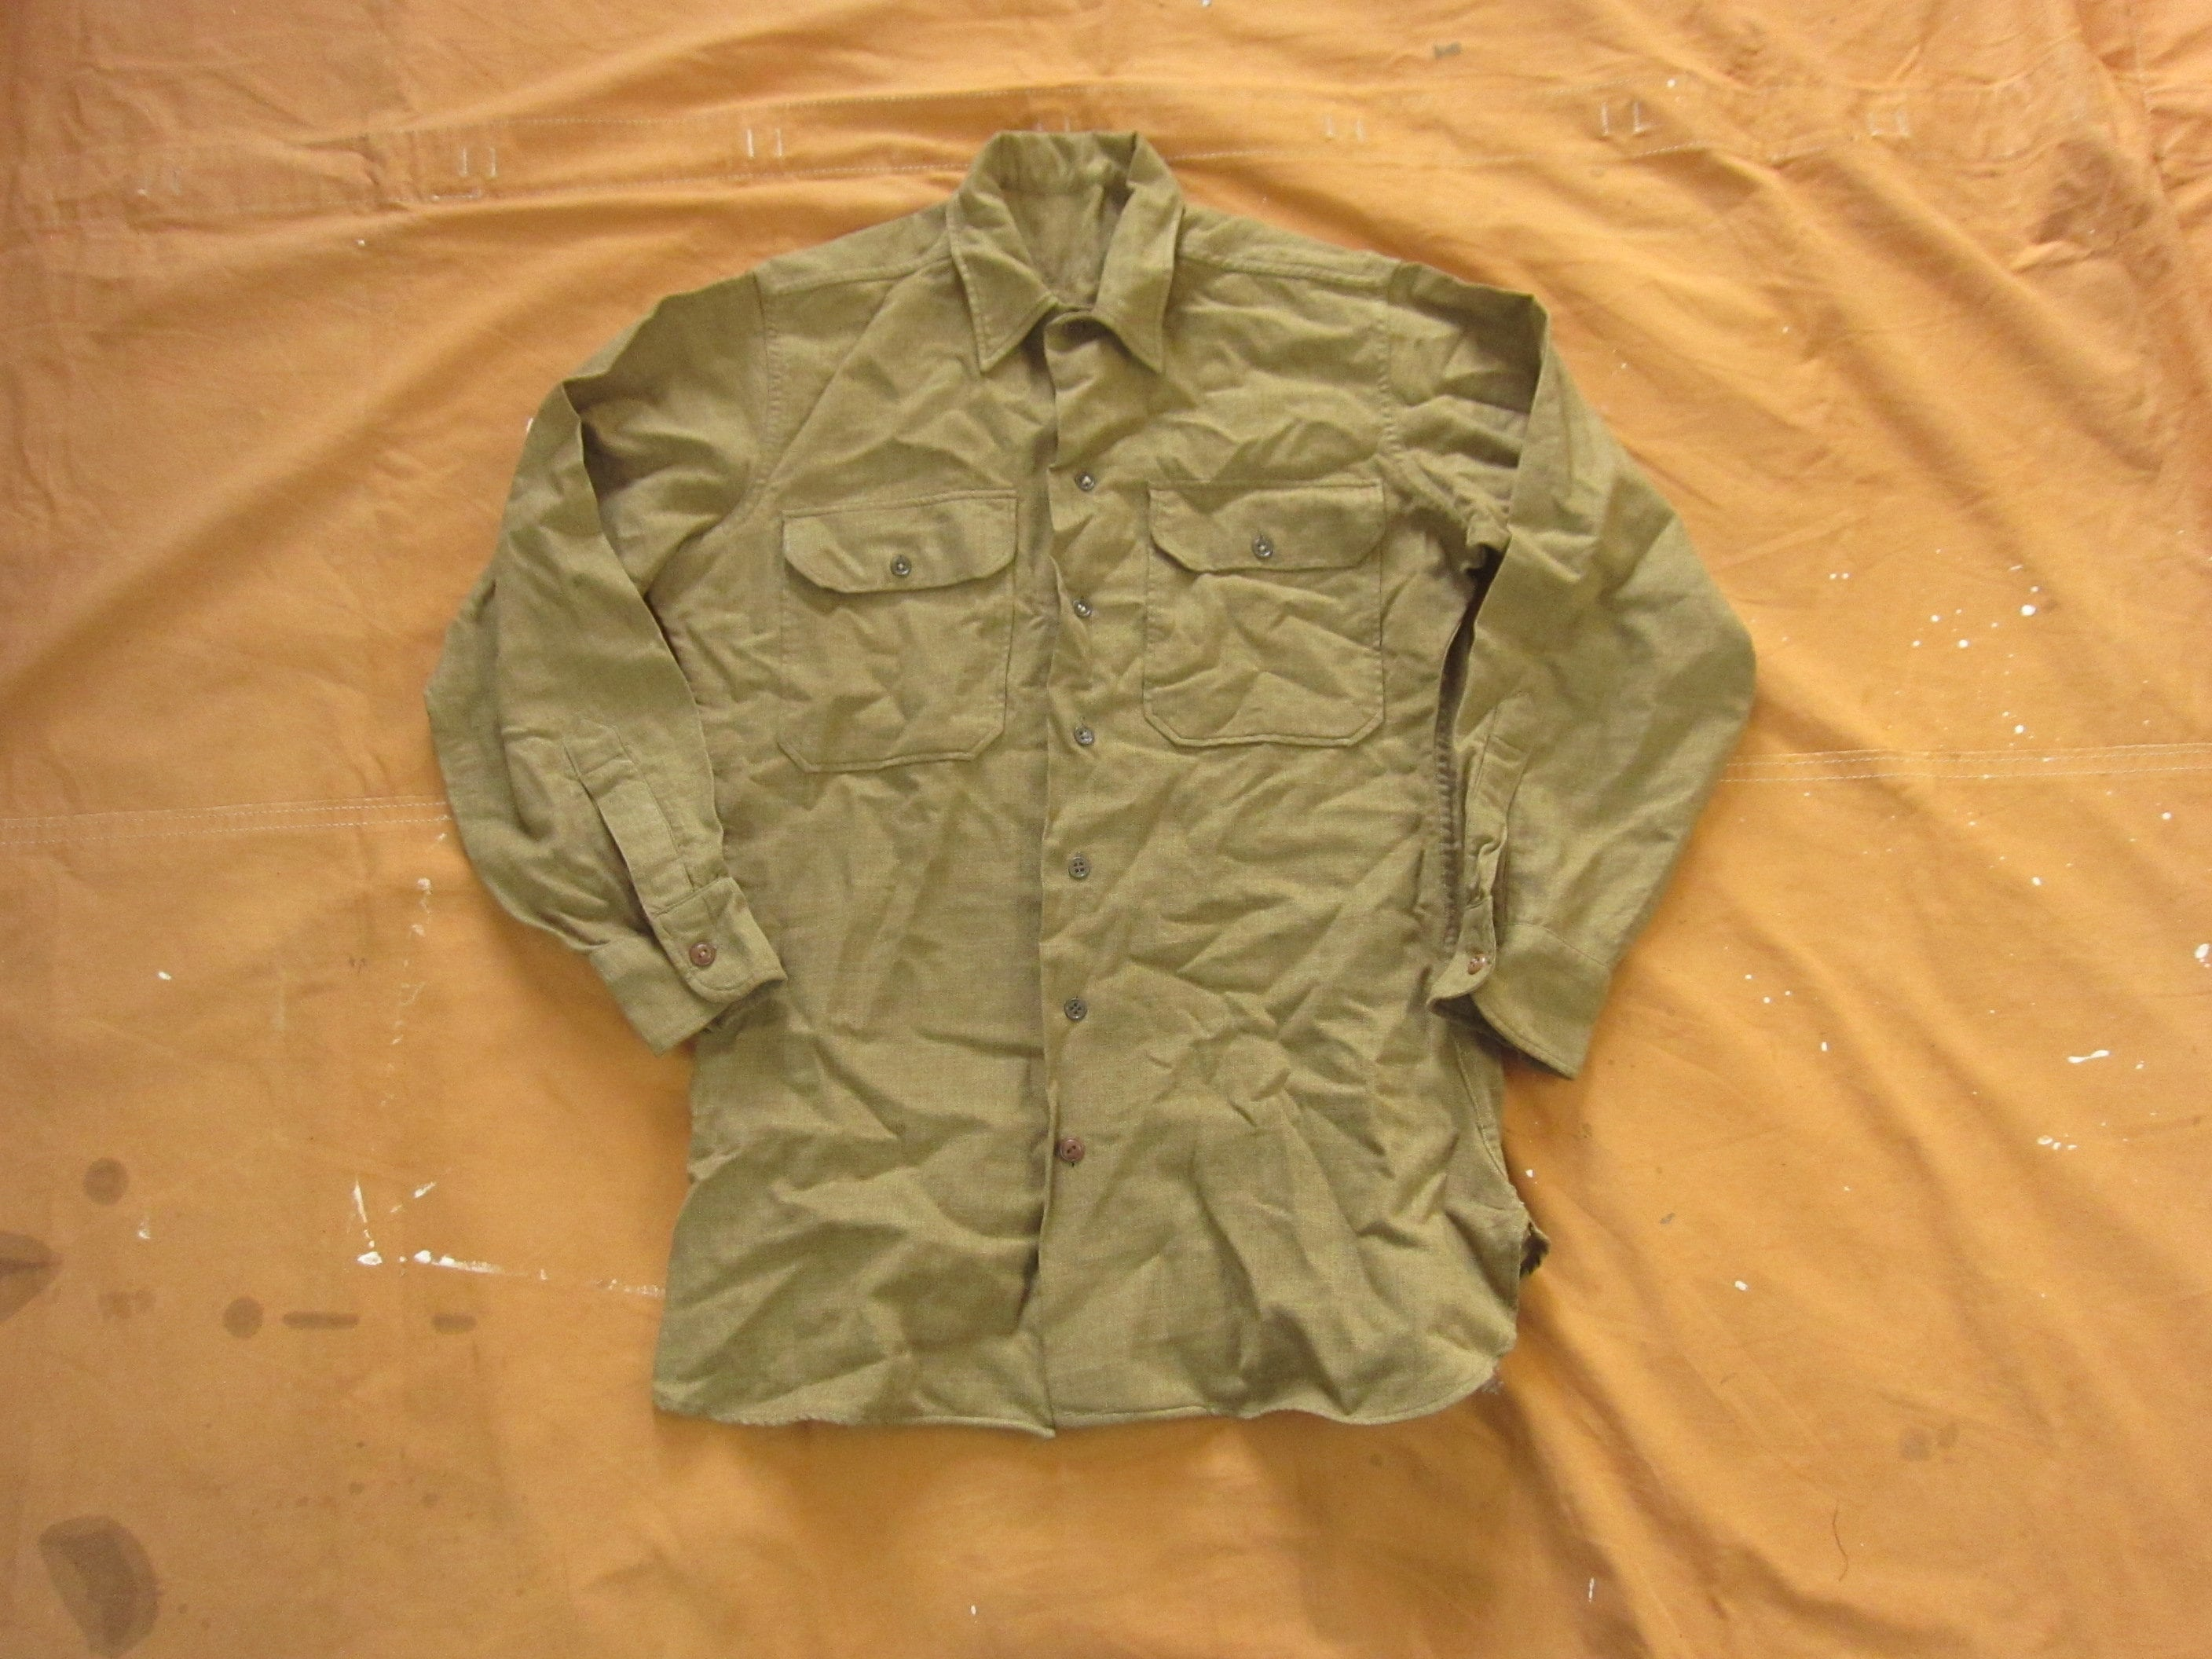 1940s Men's Shirts, Sweaters, Vests Small 40S Us Army Wool Uniform ShirtTwill, Green, Button Up Down, 1940S Ww2 Wwii $0.00 AT vintagedancer.com